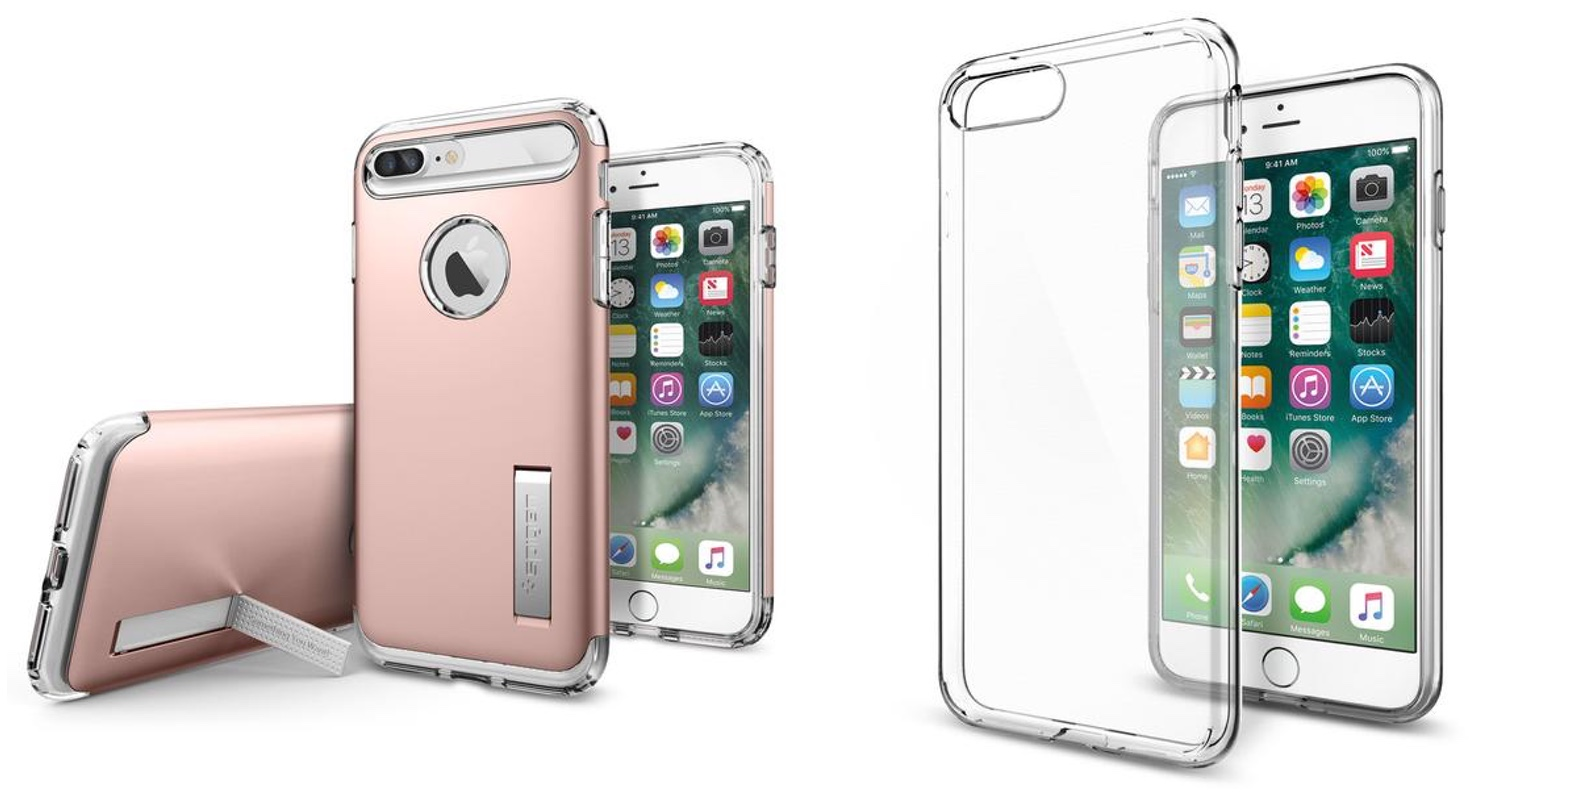 You can now pre-order cases for the iPhone 7 and 7 Plus